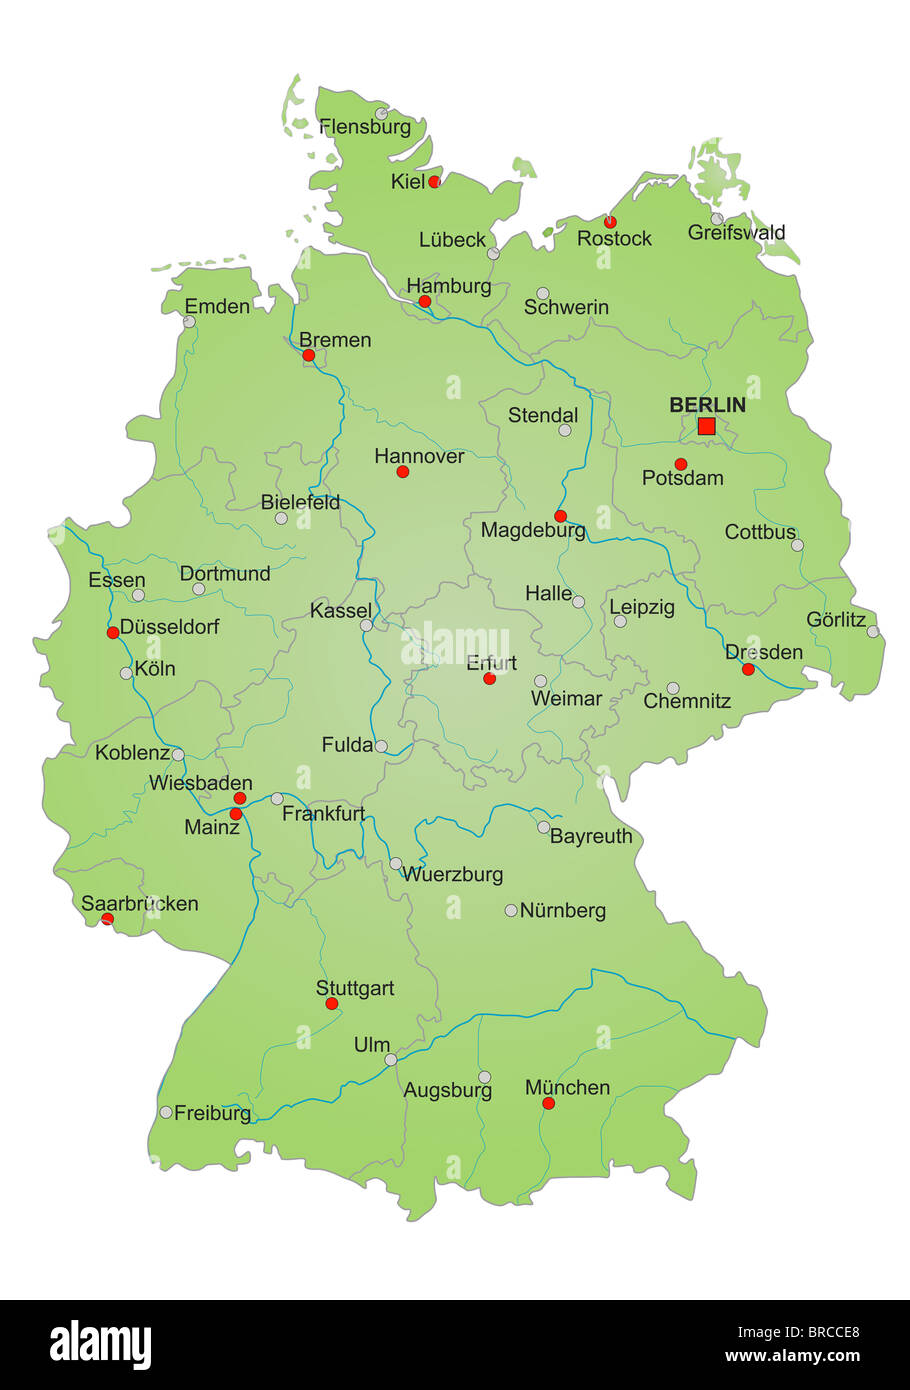 stylized map of germany showing states rivers and big cities city names in german language